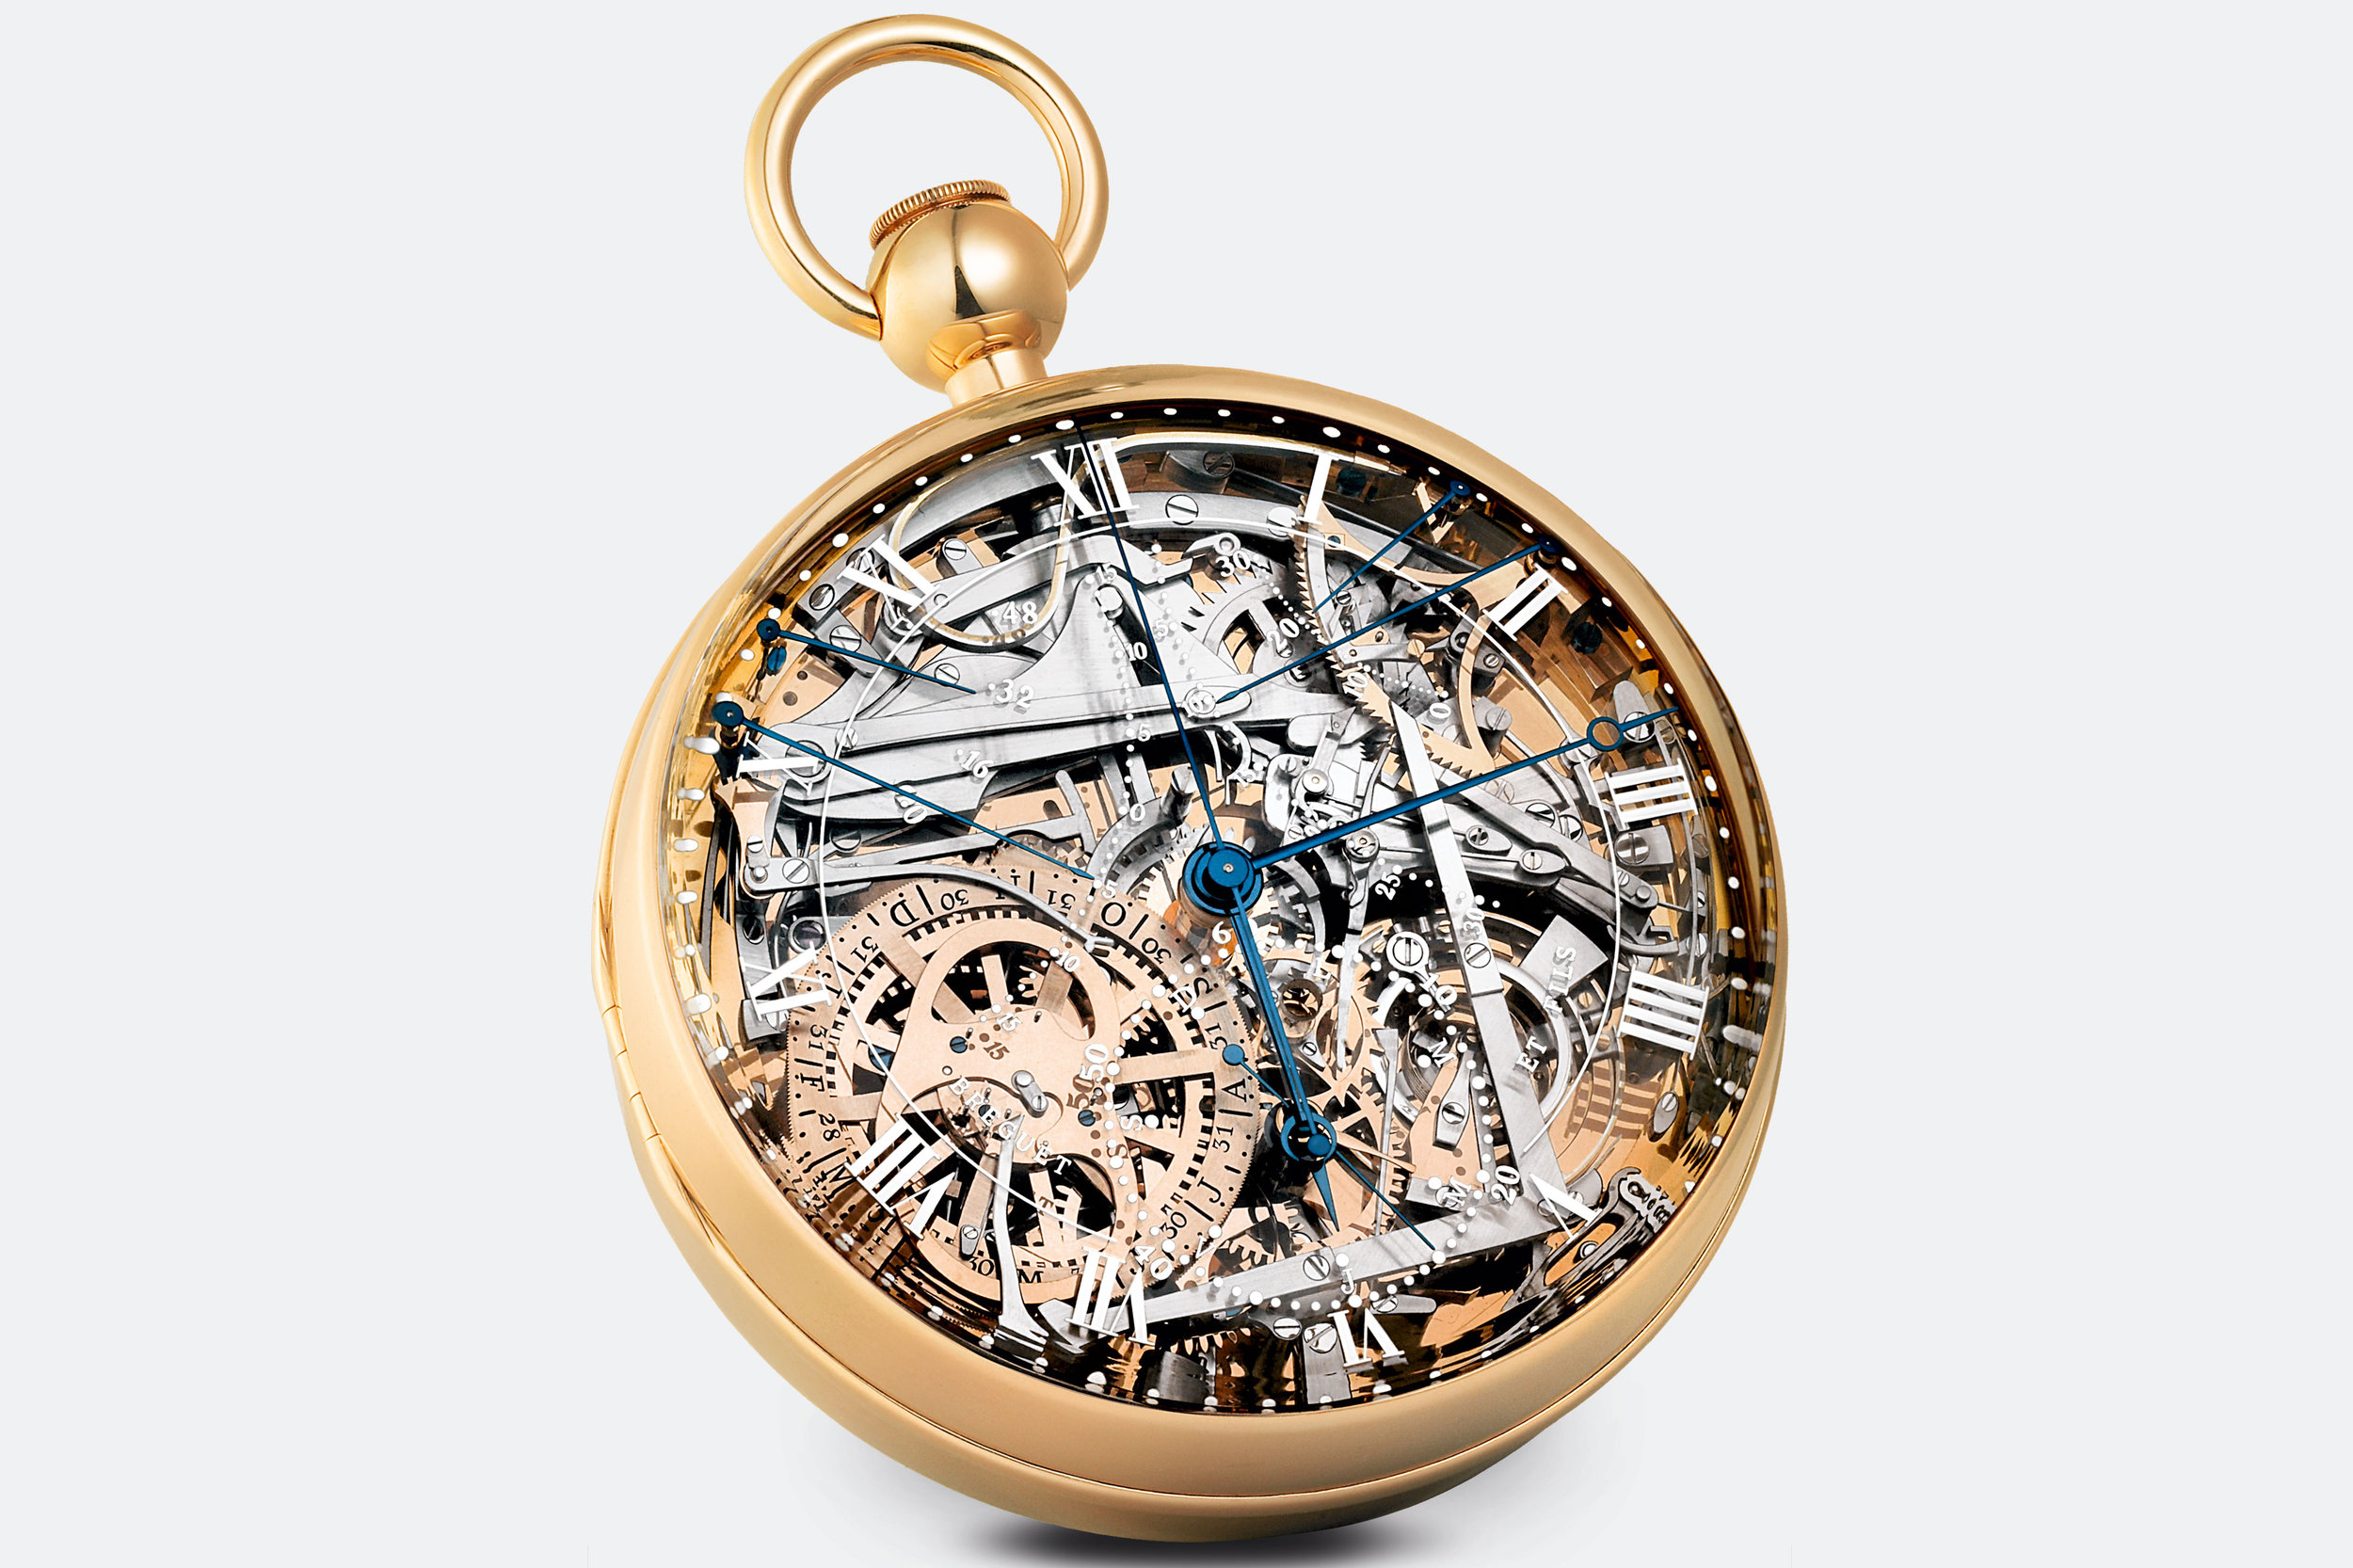 The modern replica of the Breguet 'Marie Antoinette' watch. Photo courtesy of Breguet.